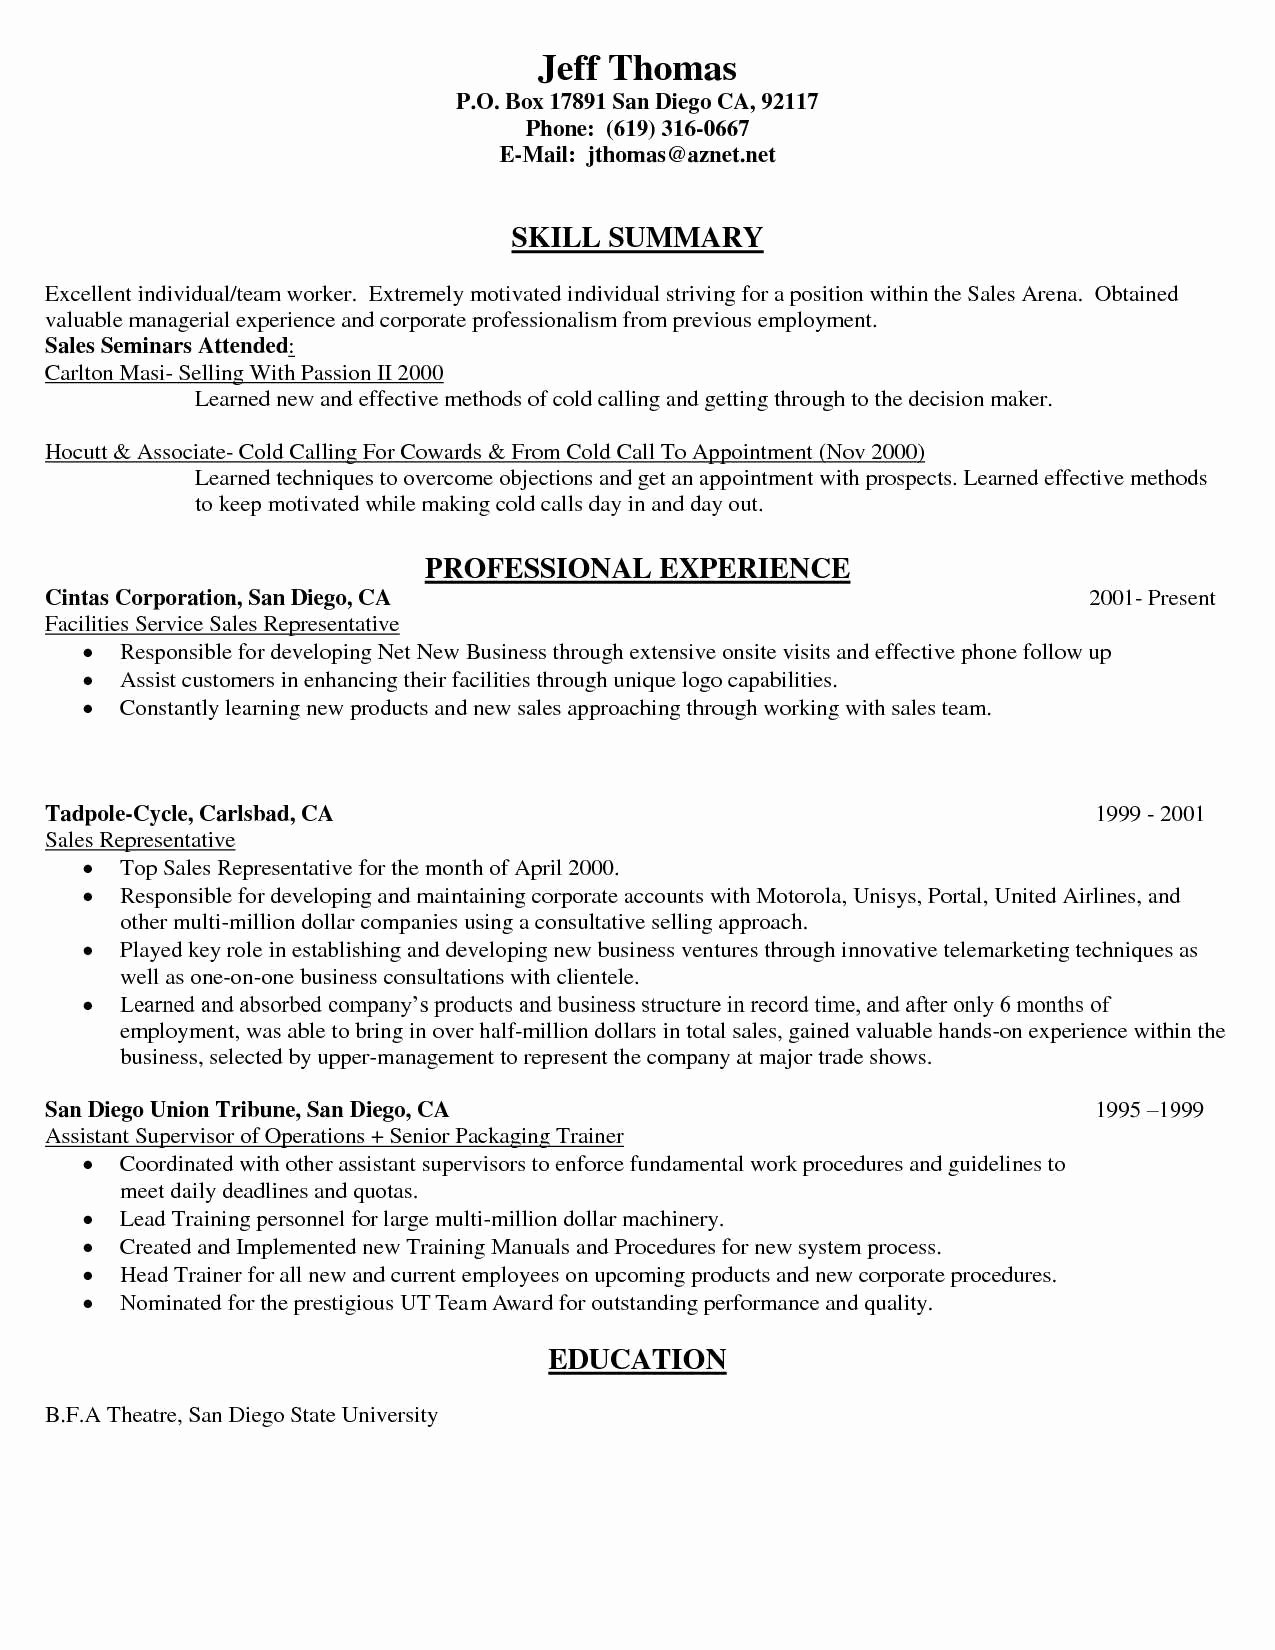 Resume for Cell Phone Sales Representative Resume Ideas